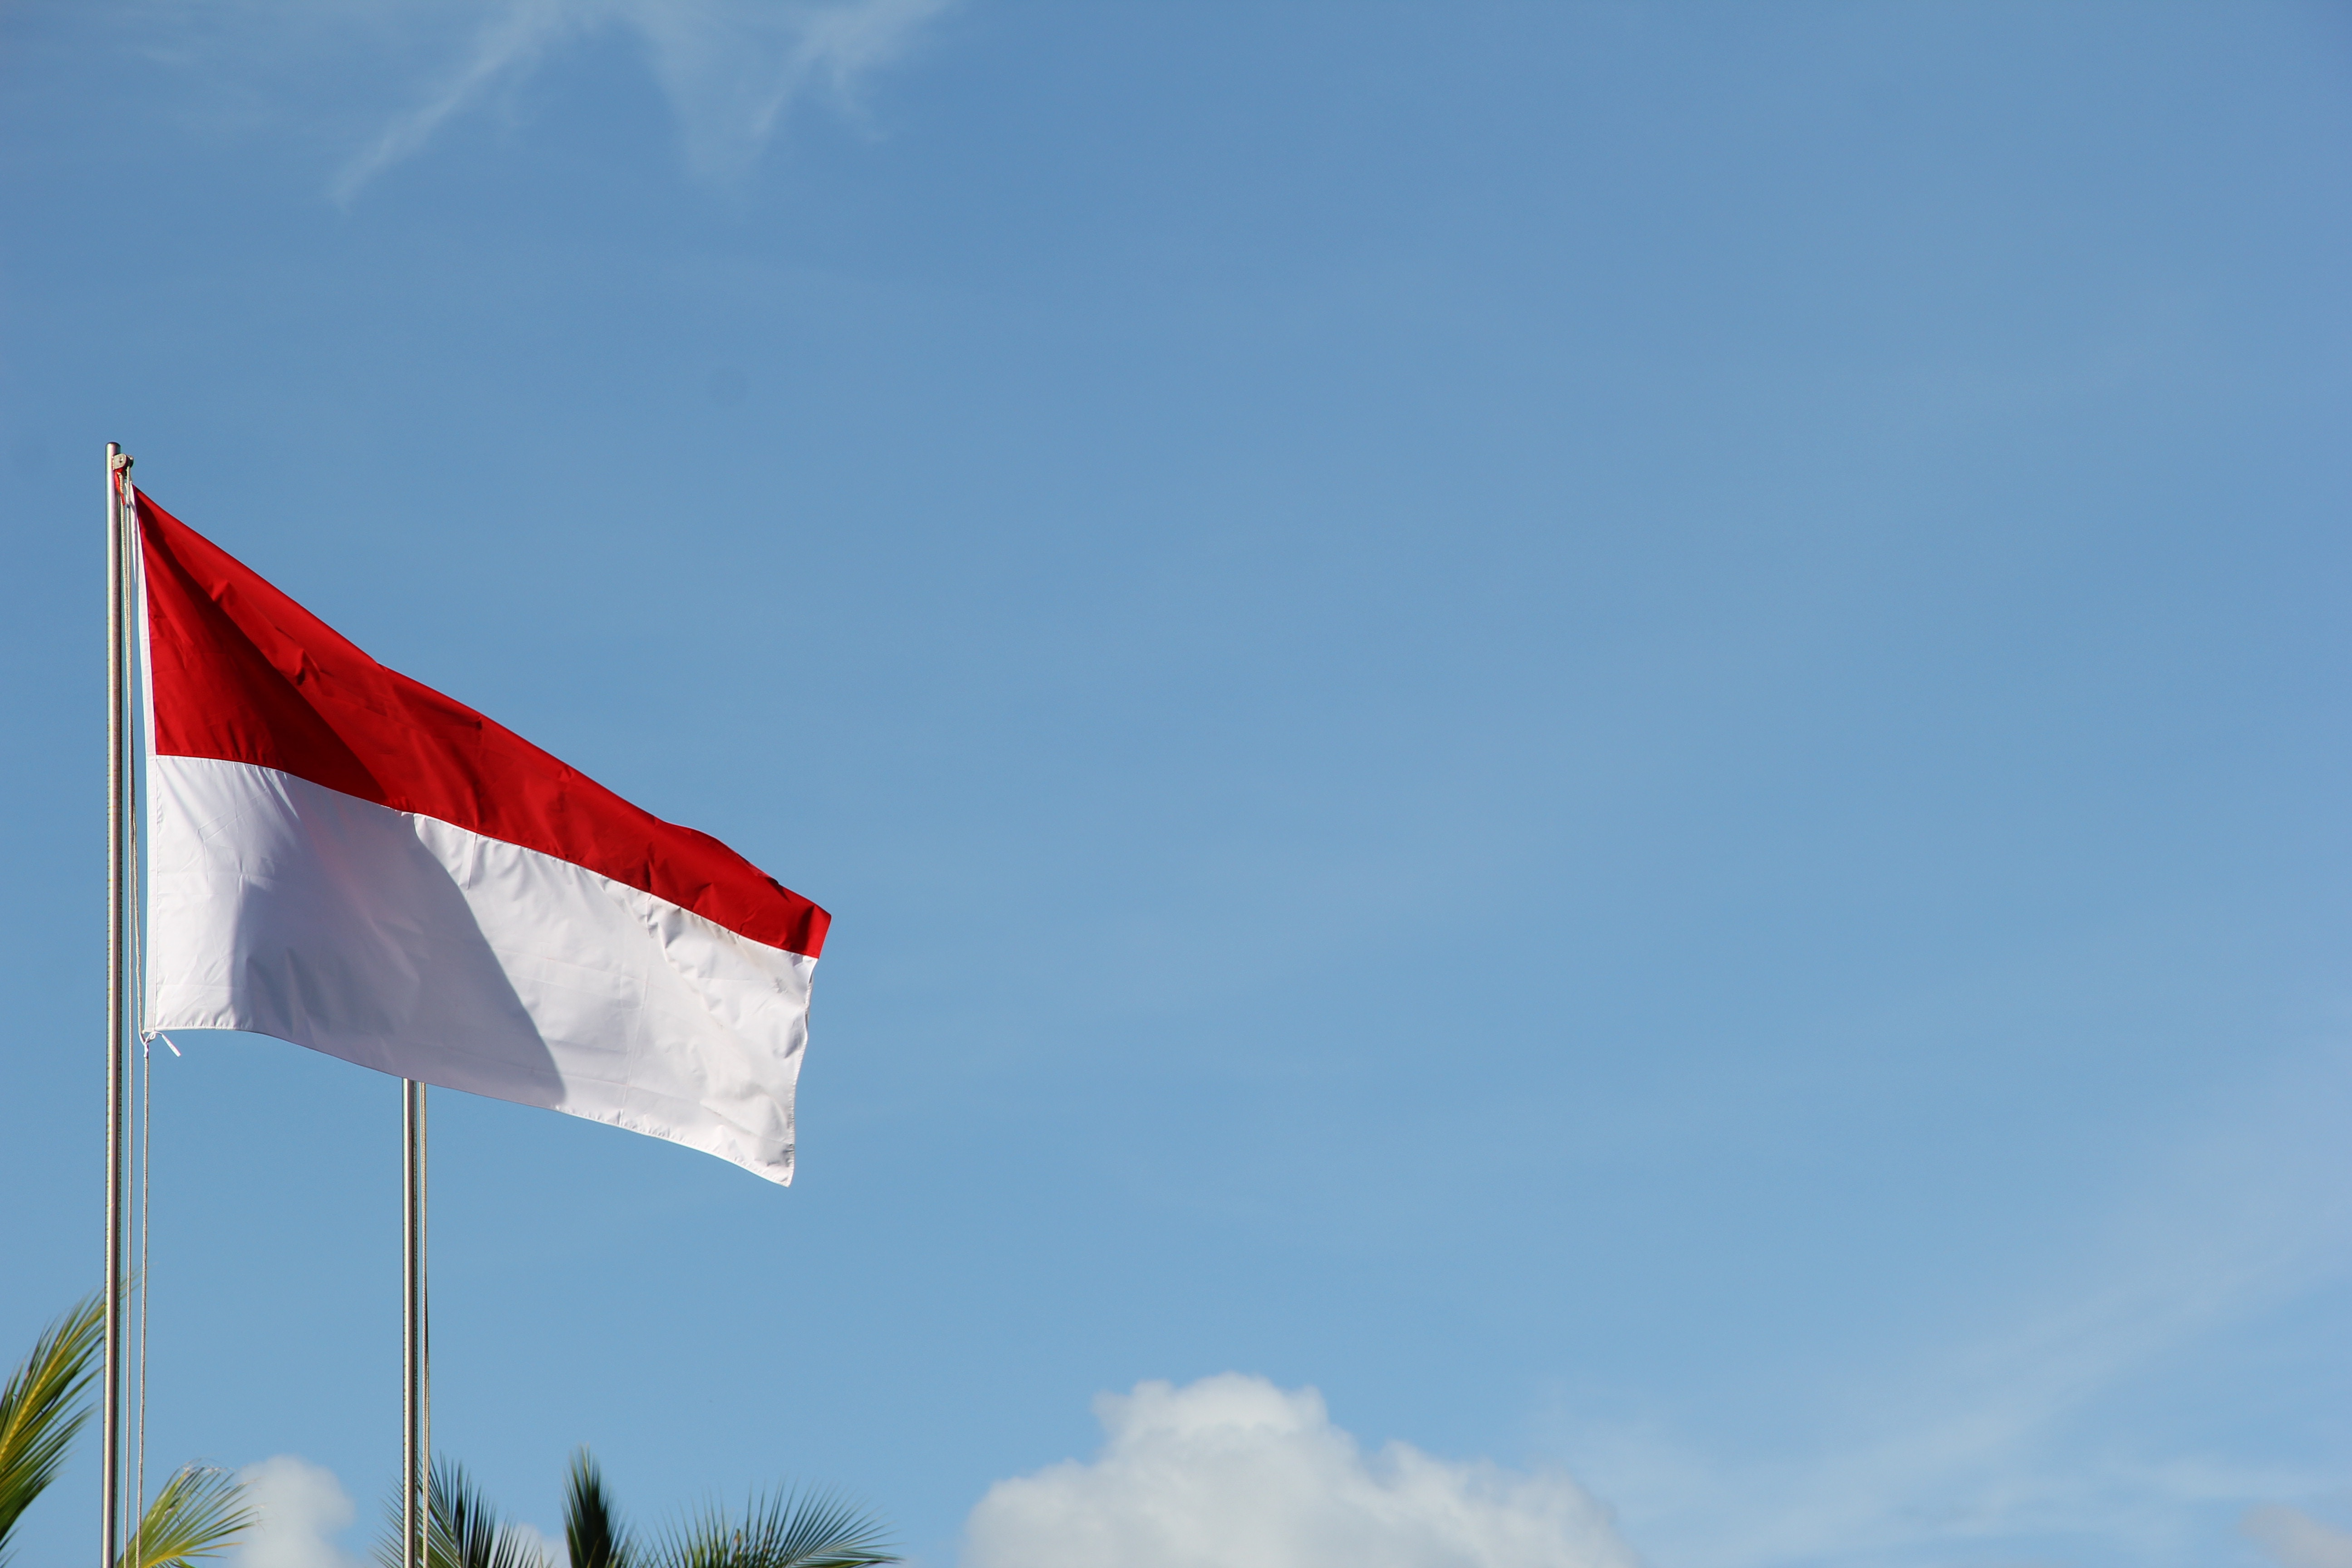 Indonesia flag blowing in the breeze in front of blue sky and palm trees